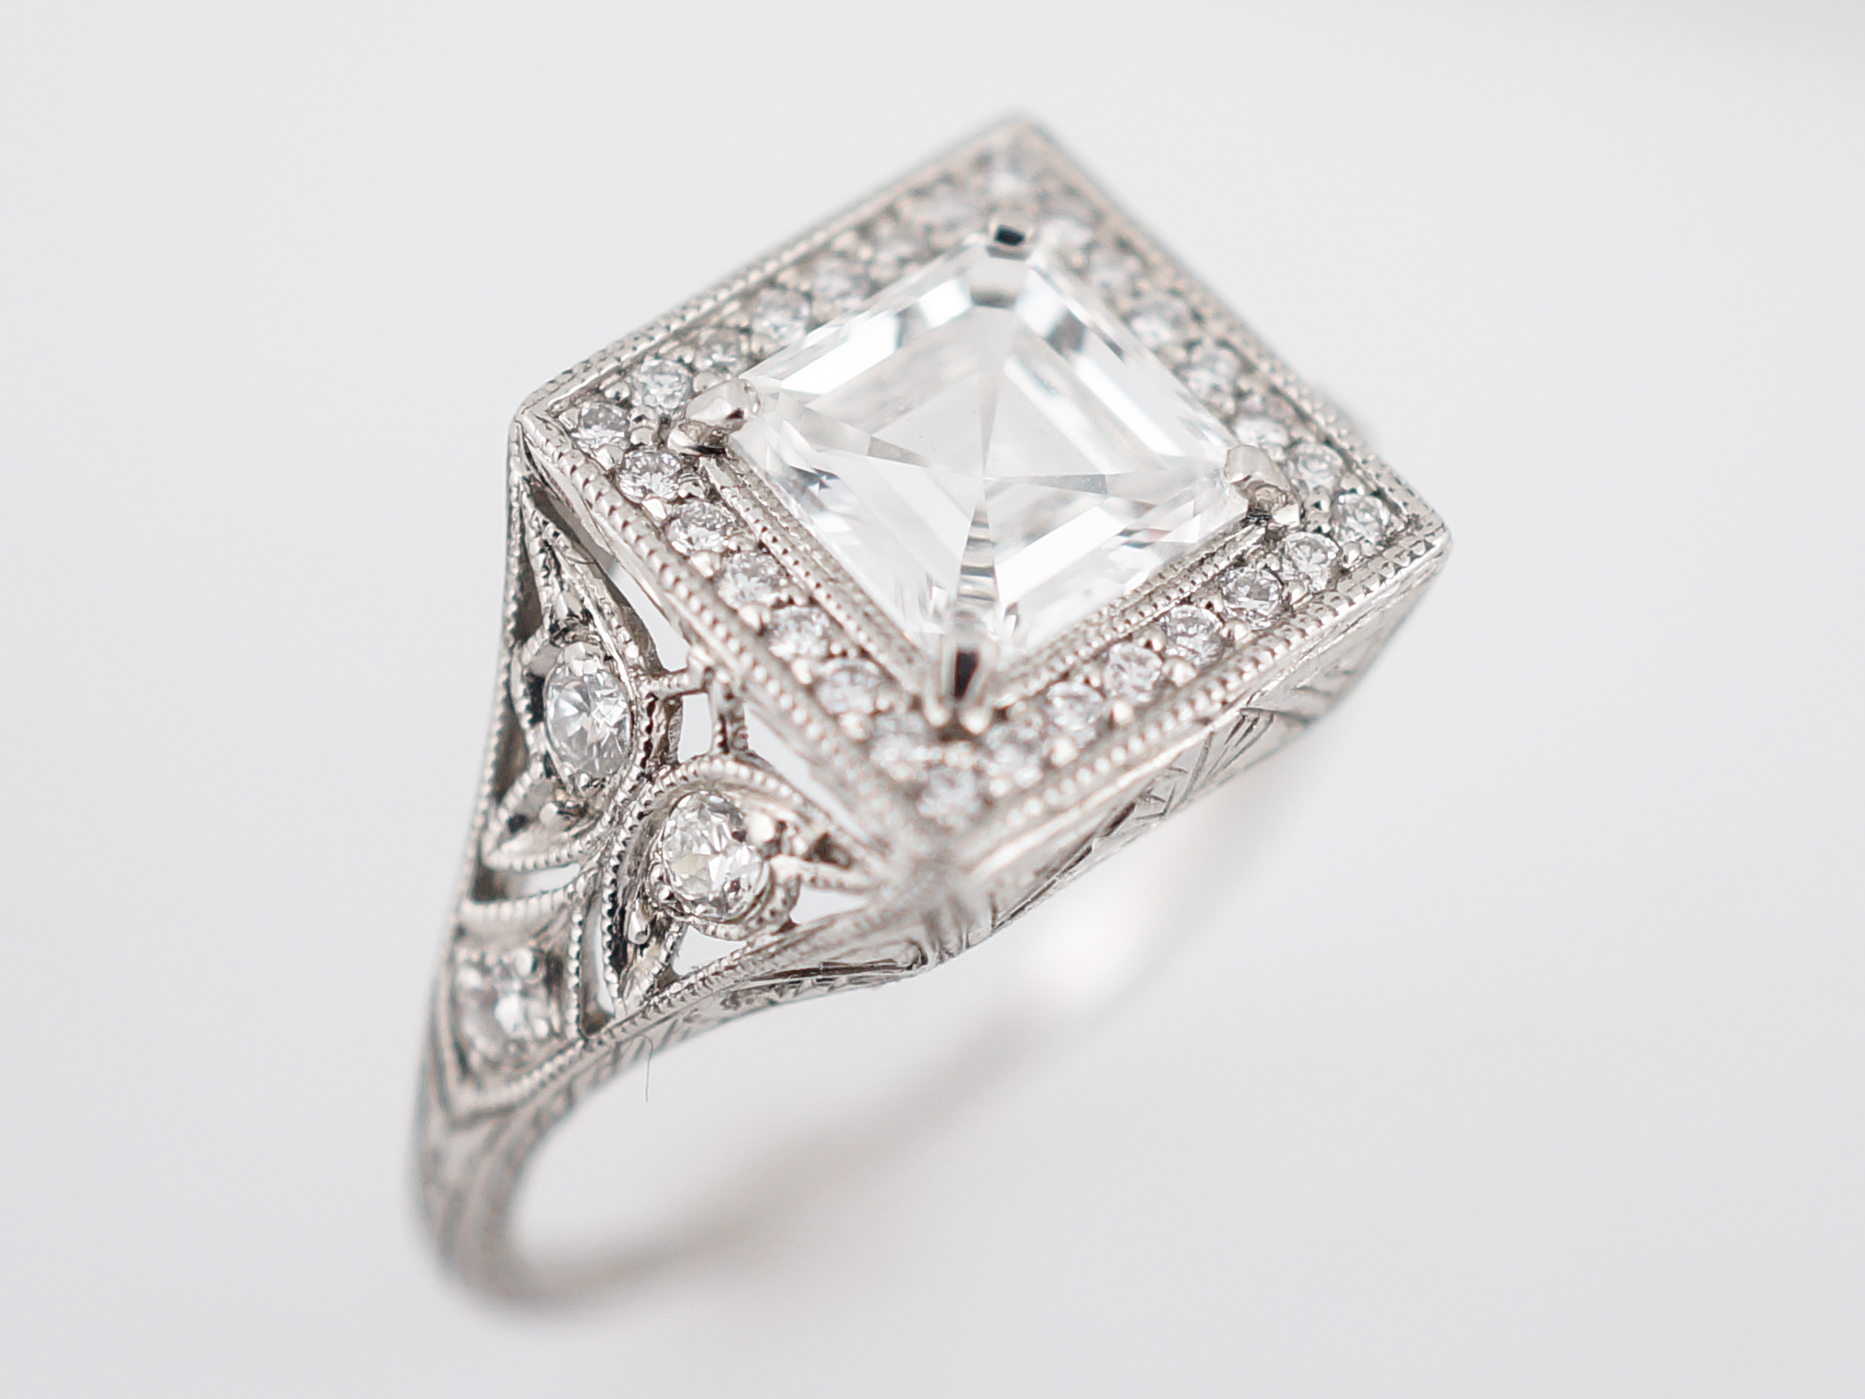 asher white cut diamond women ring with center s jaffe a studded alexis of asscher love product by house seasons c gold